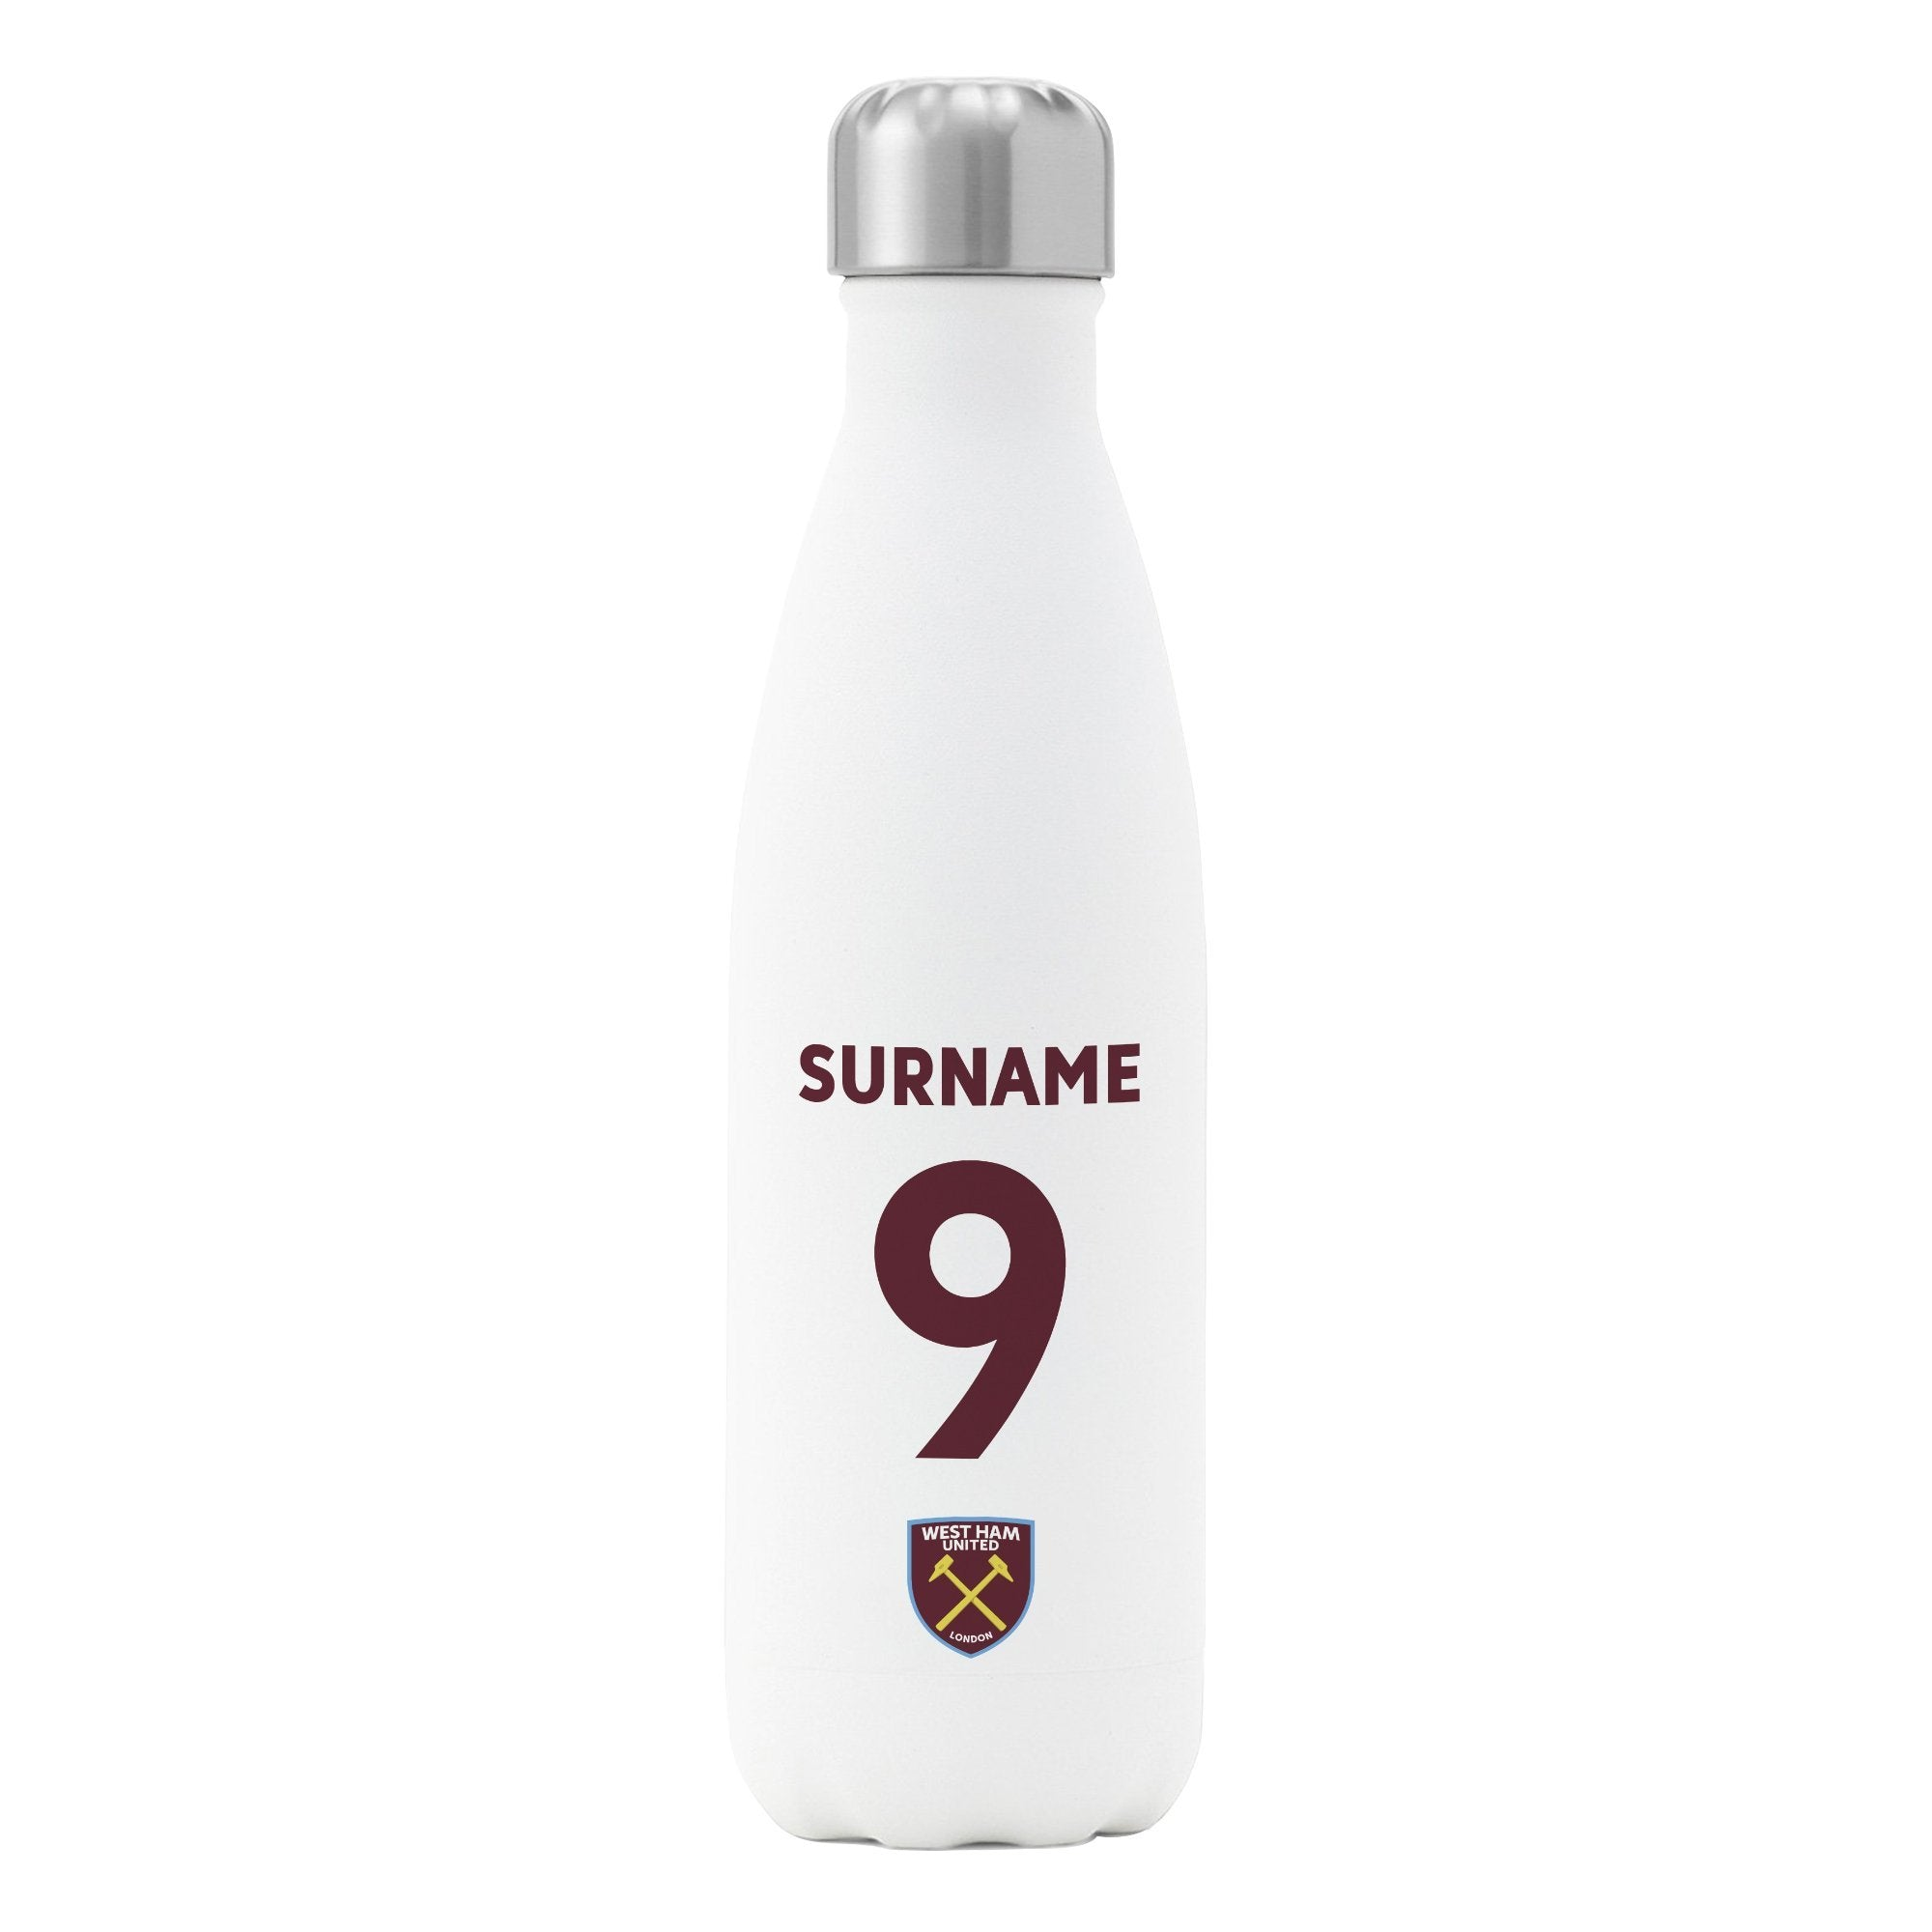 Personalised West Ham United FC Insulated Bottle Flask, Food & Beverage Carriers by Glamorous Gifts UK